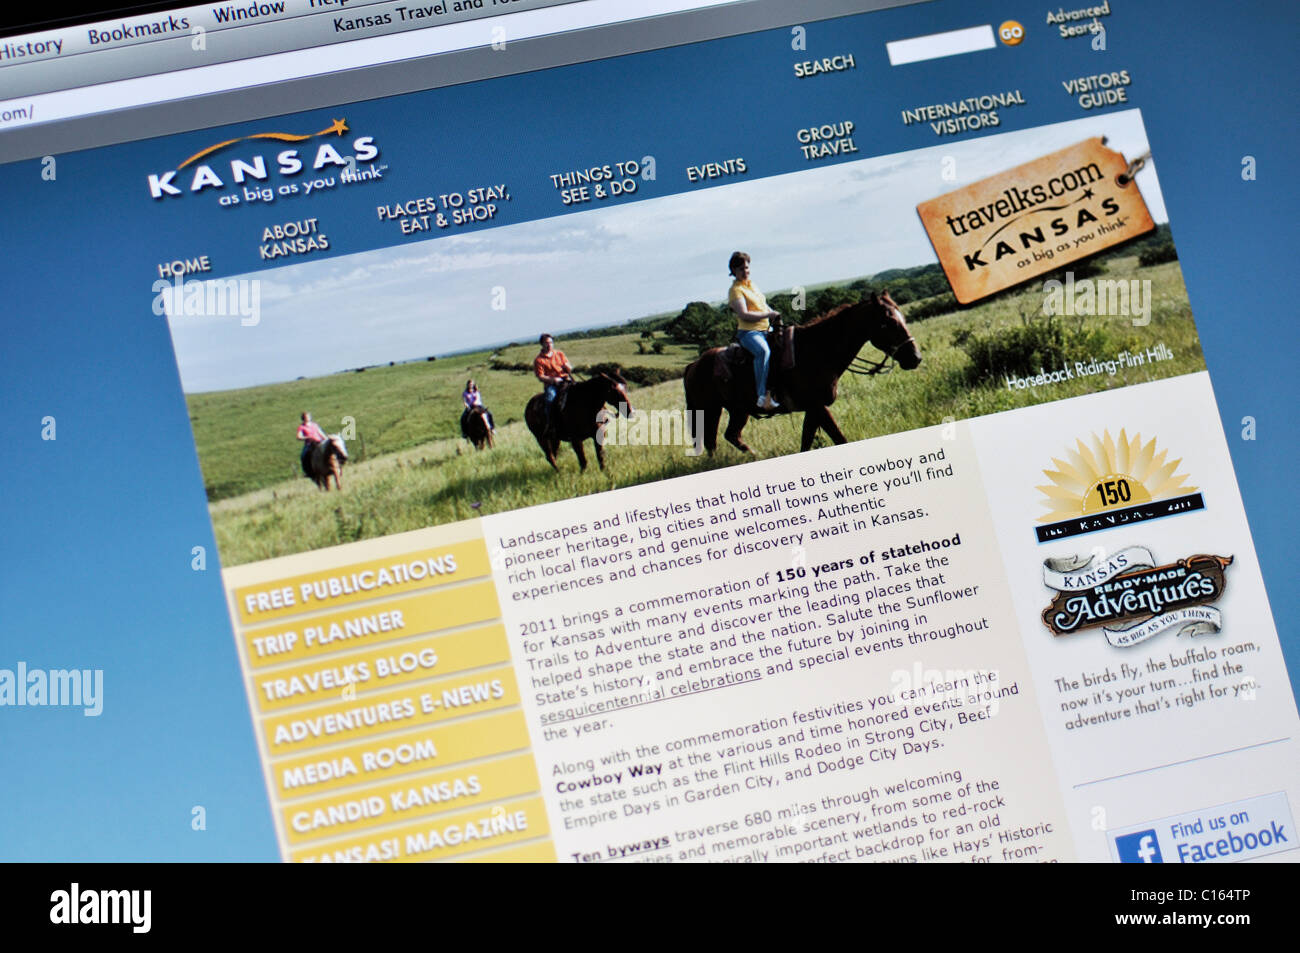 Kansas official state tourism website - Stock Image